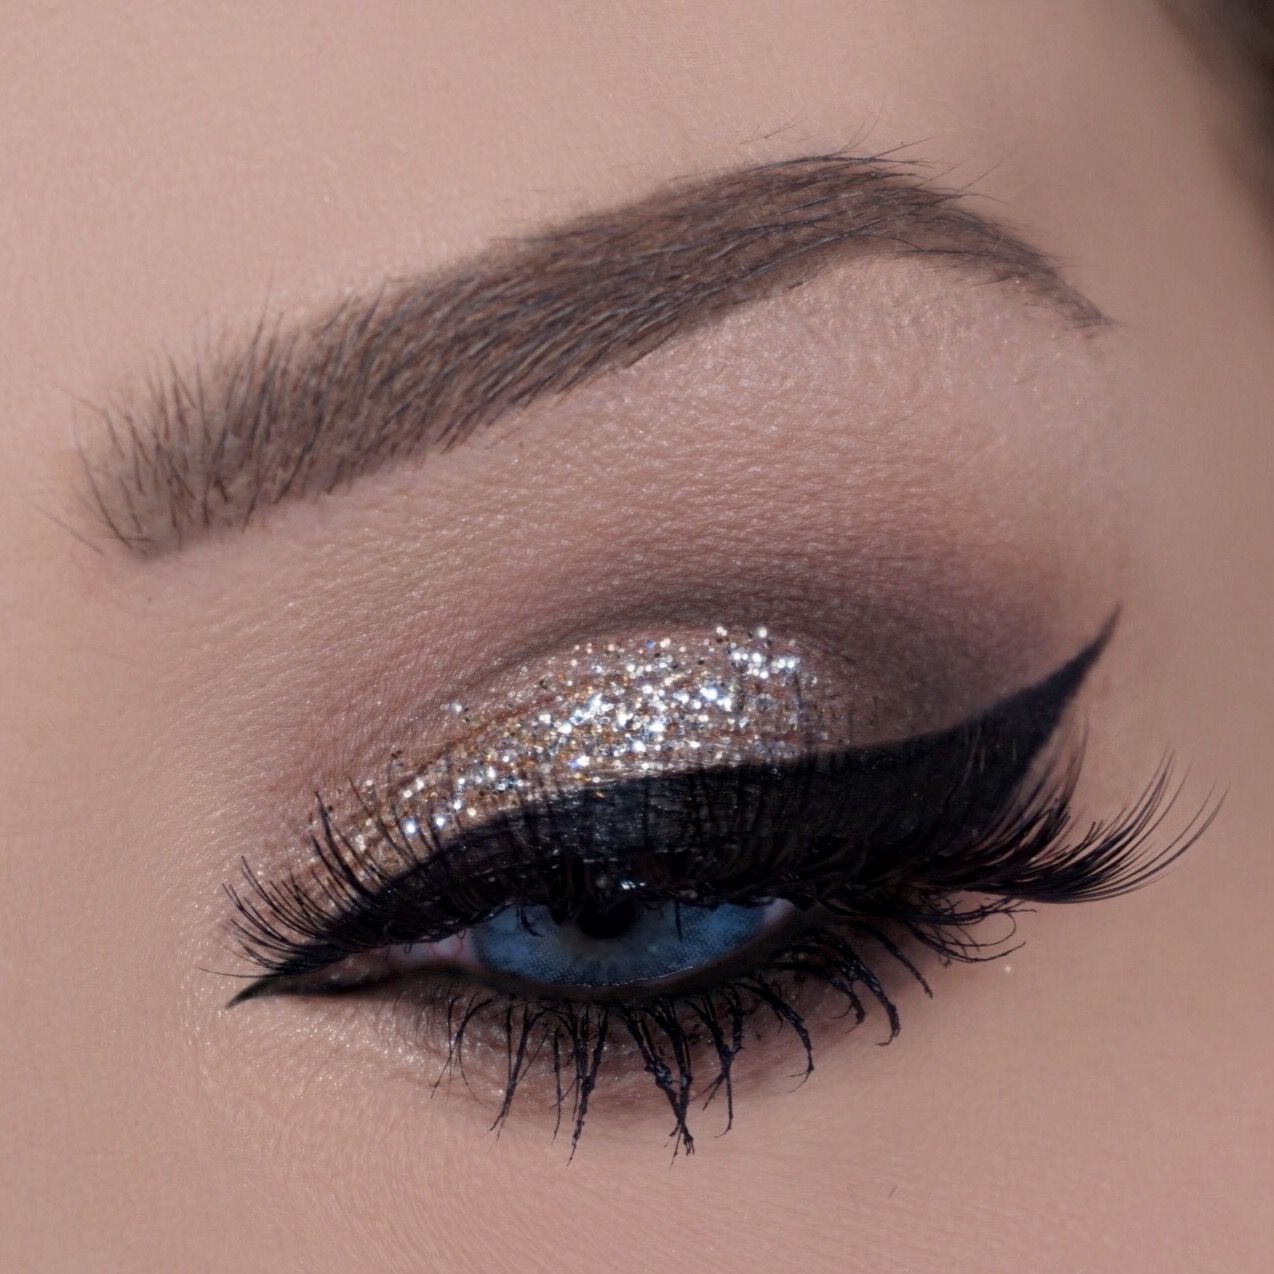 Glitter Makeup Eyes Lipsticks Pinterest Make Up Eye Make Up